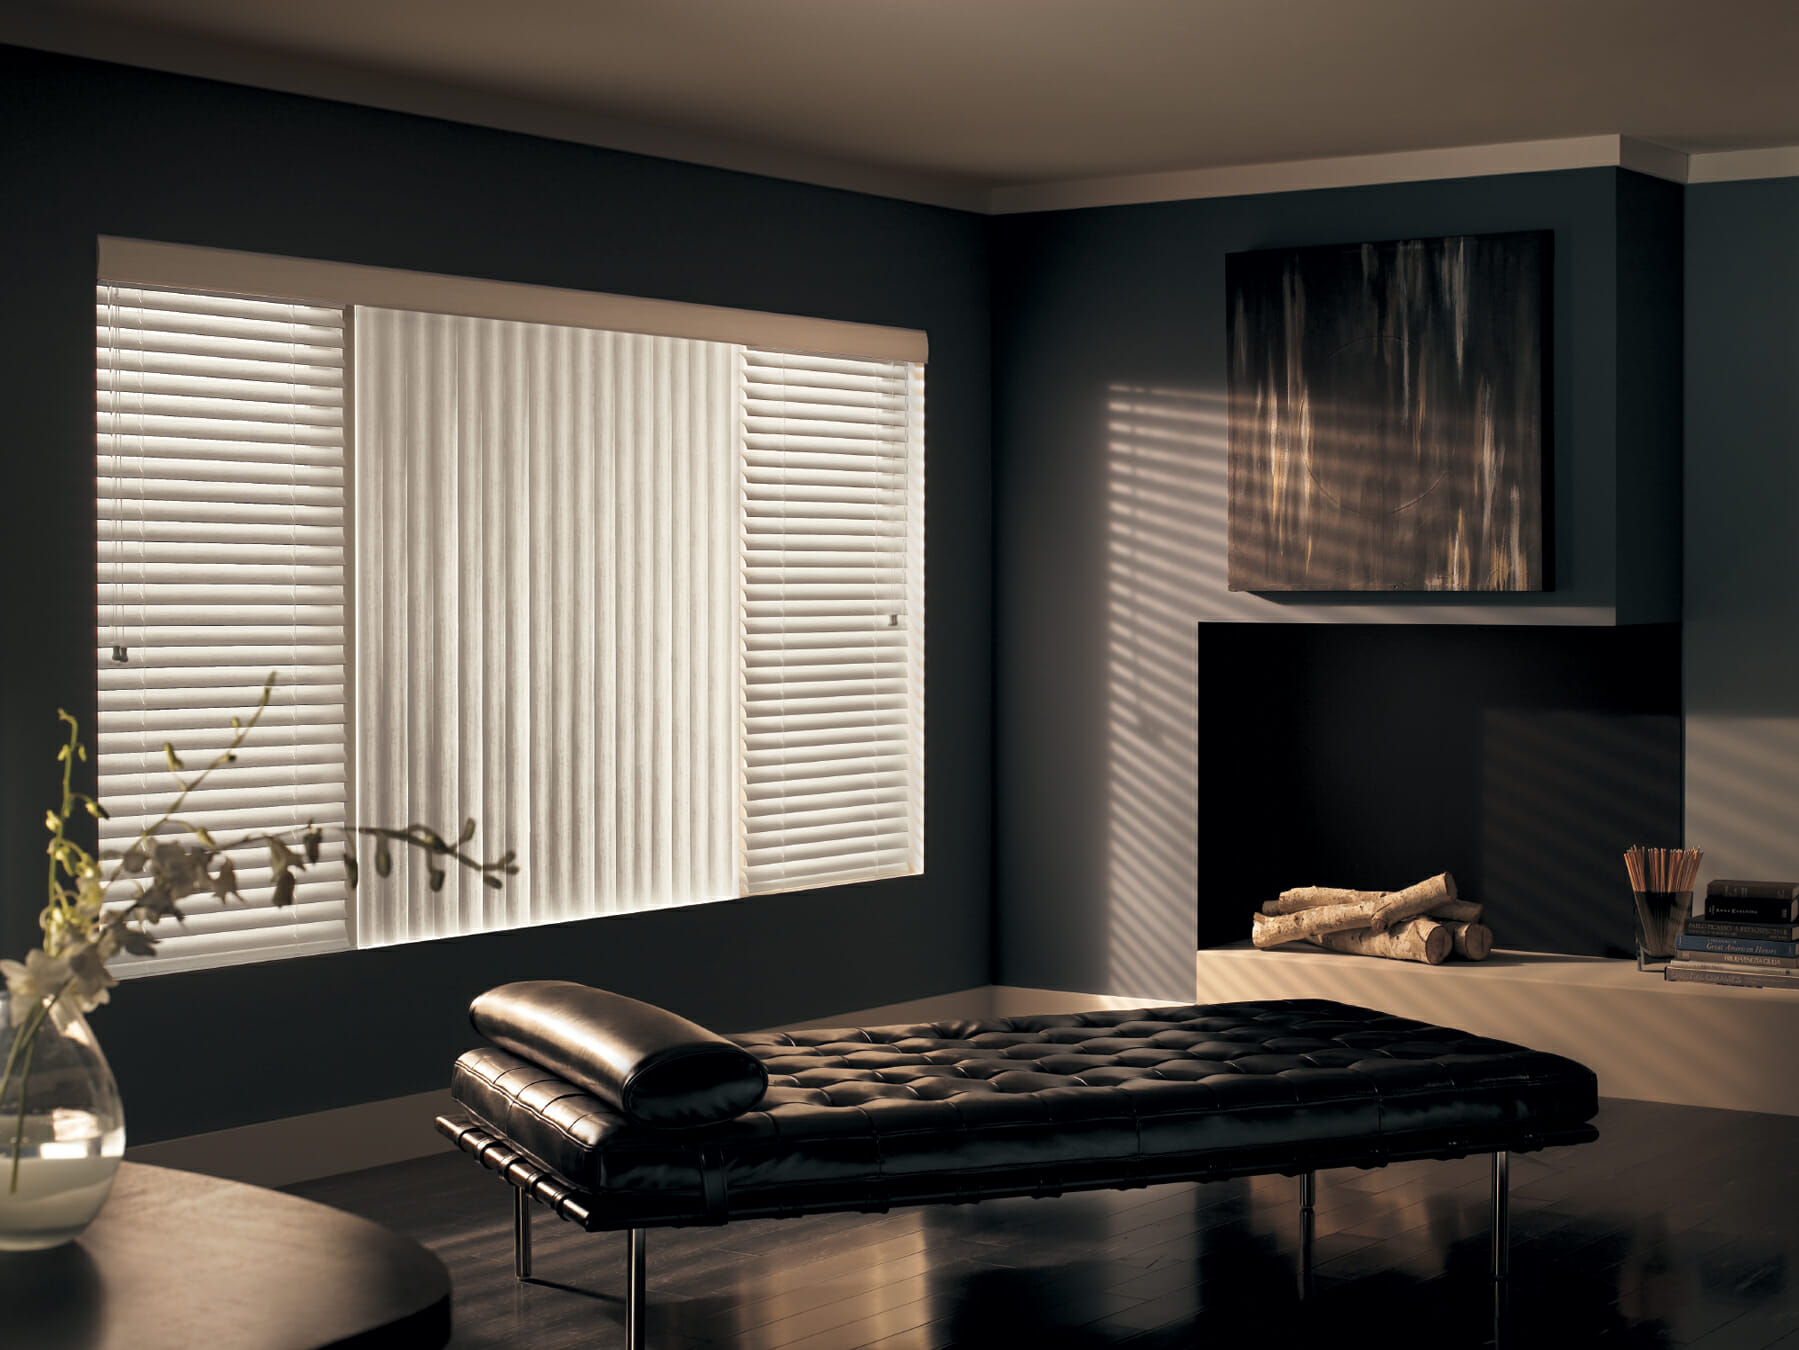 How to clean vertical blinds - Vertical Blinds Video Photo Gallery